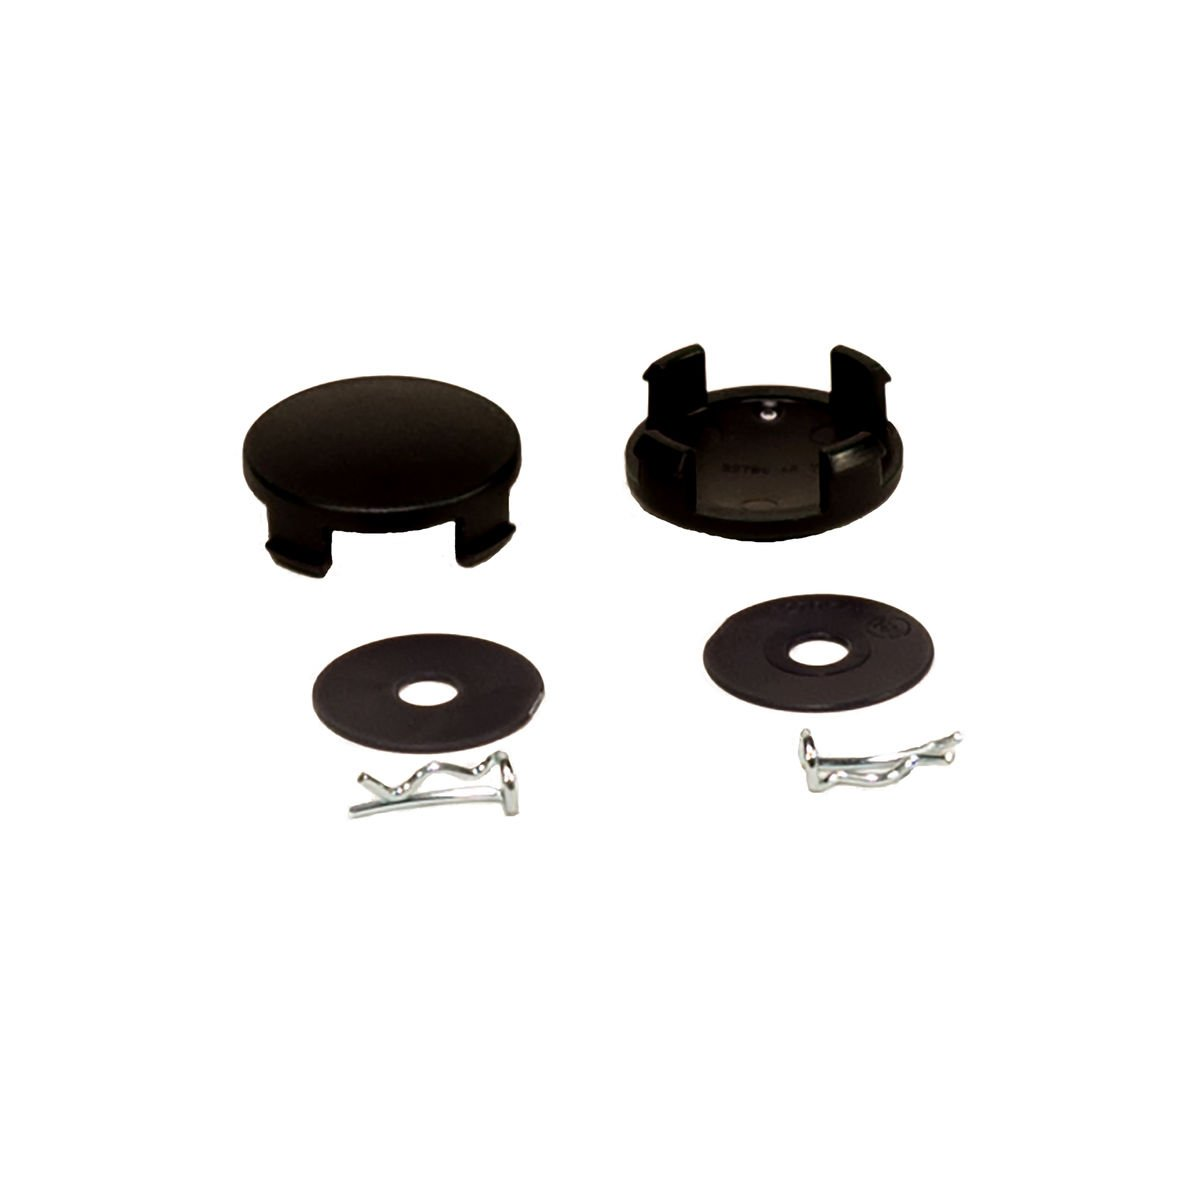 Chicco Bravo Stroller - Replacement Rear Wheel Set - Pins & Hubcaps